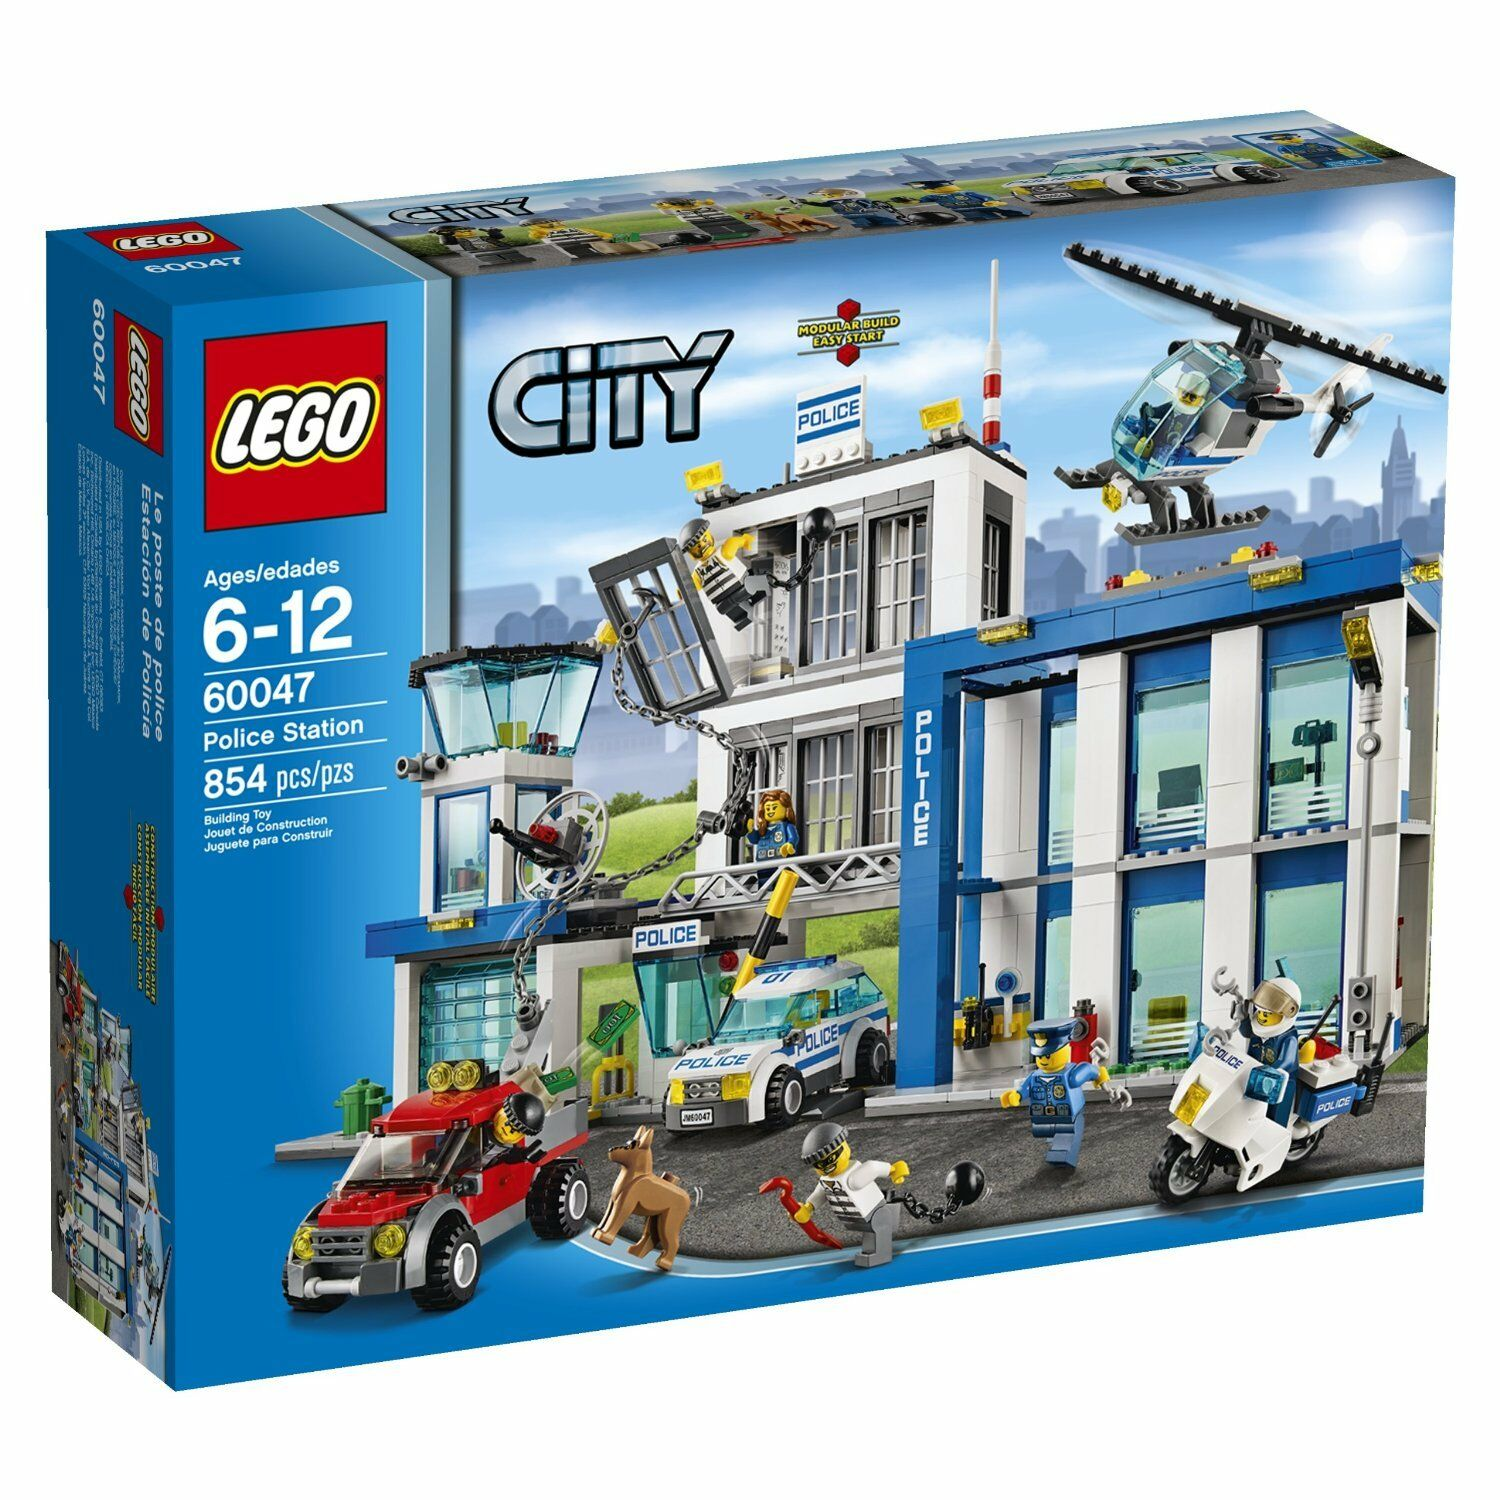 LEGO City Police Station 60047 Plus Bonus LEGO City Police Accessory 853570